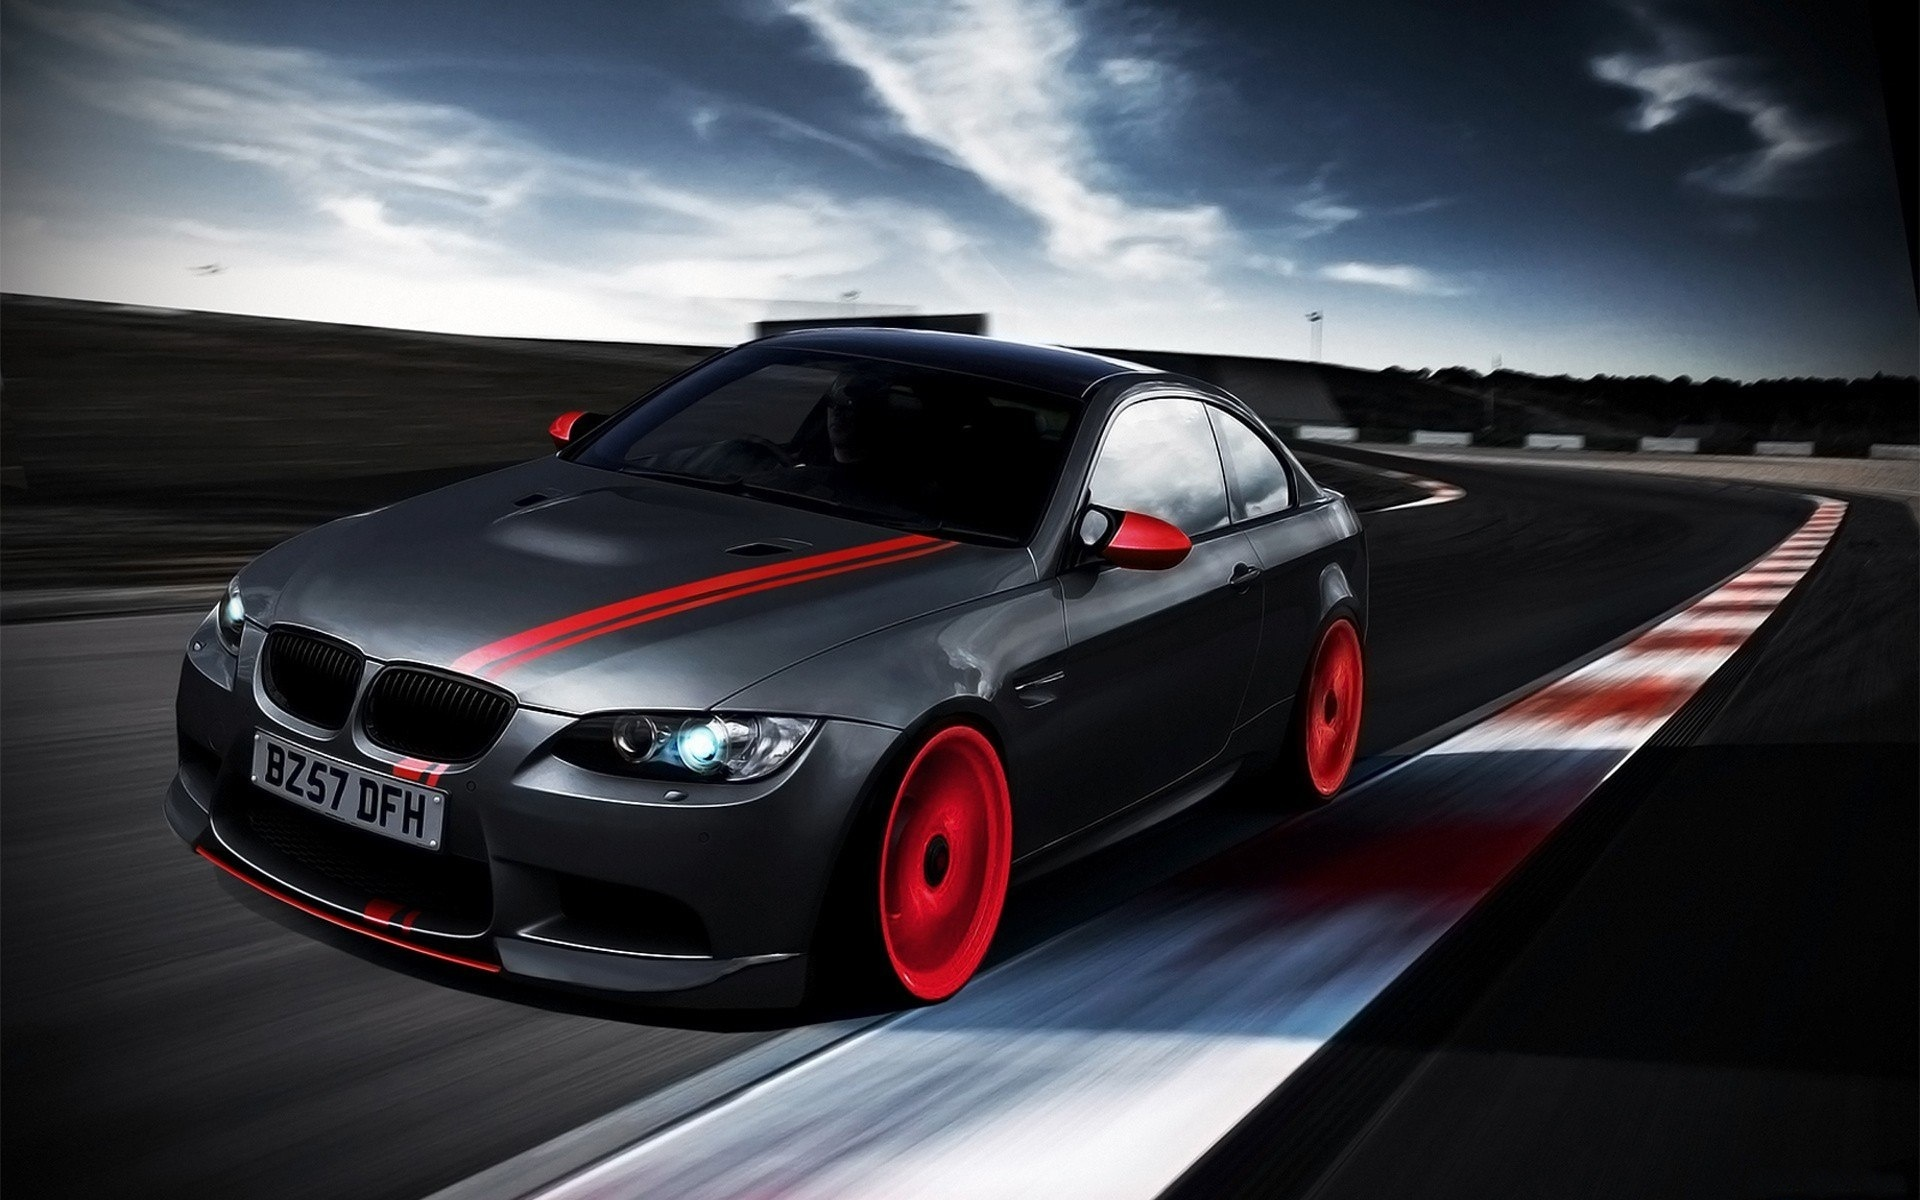 cool bmw wallpaper 28628 1920x1200 px hdwallsource